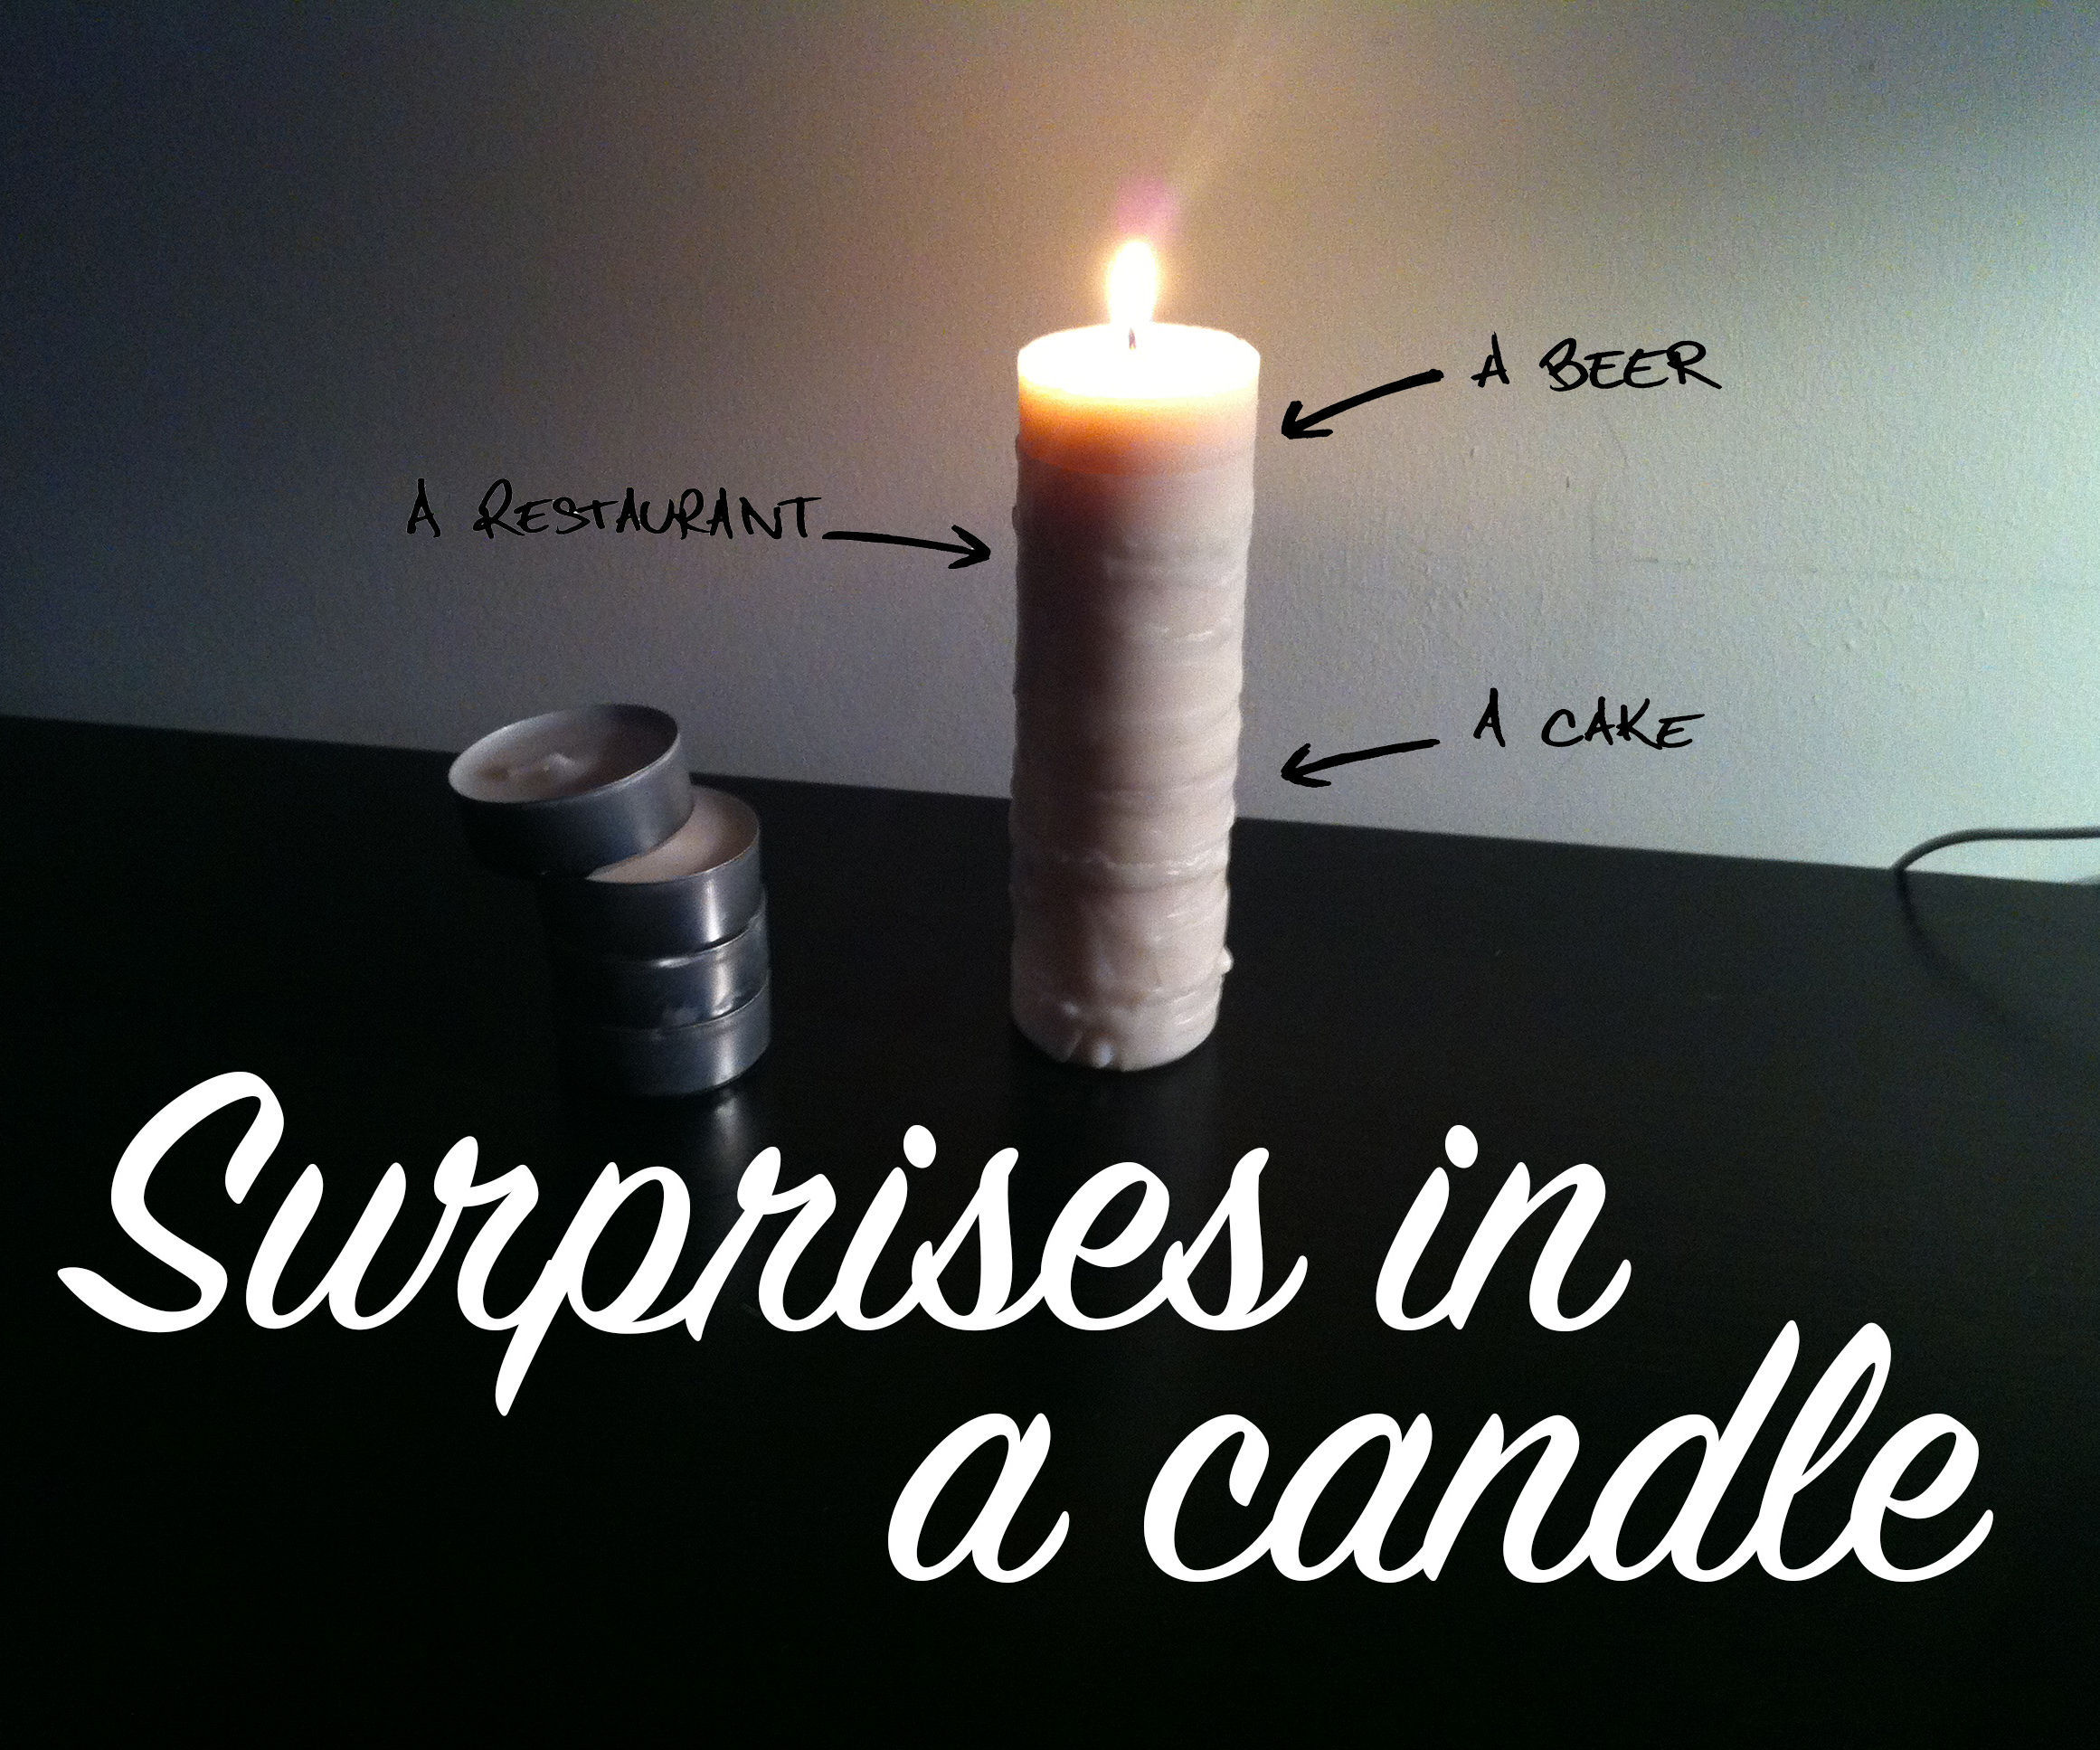 Surprises in a candle